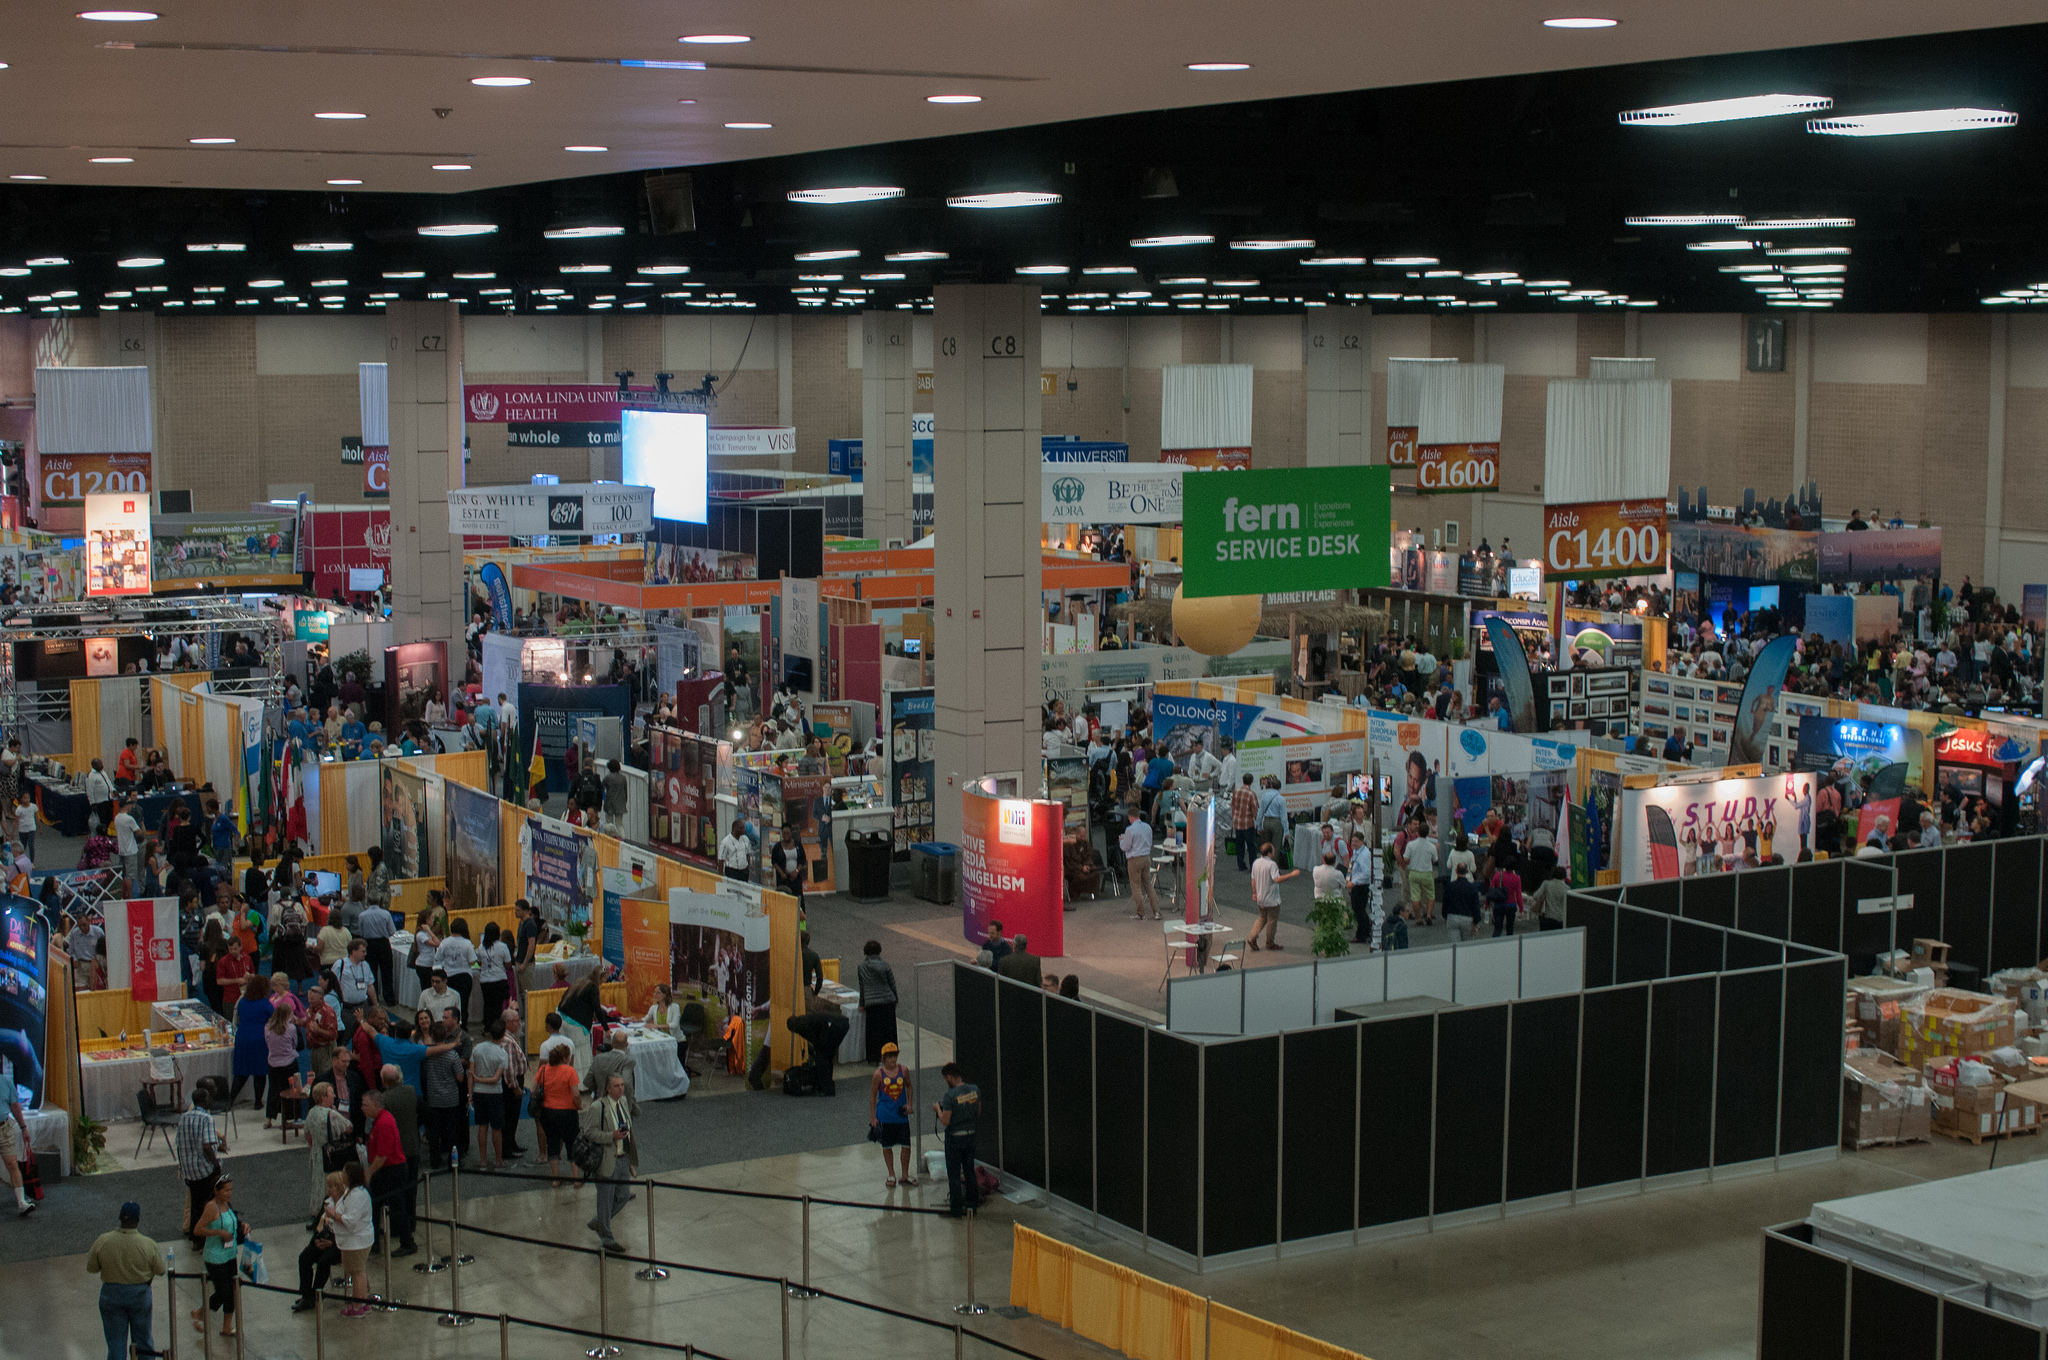 Exhibit-Hall